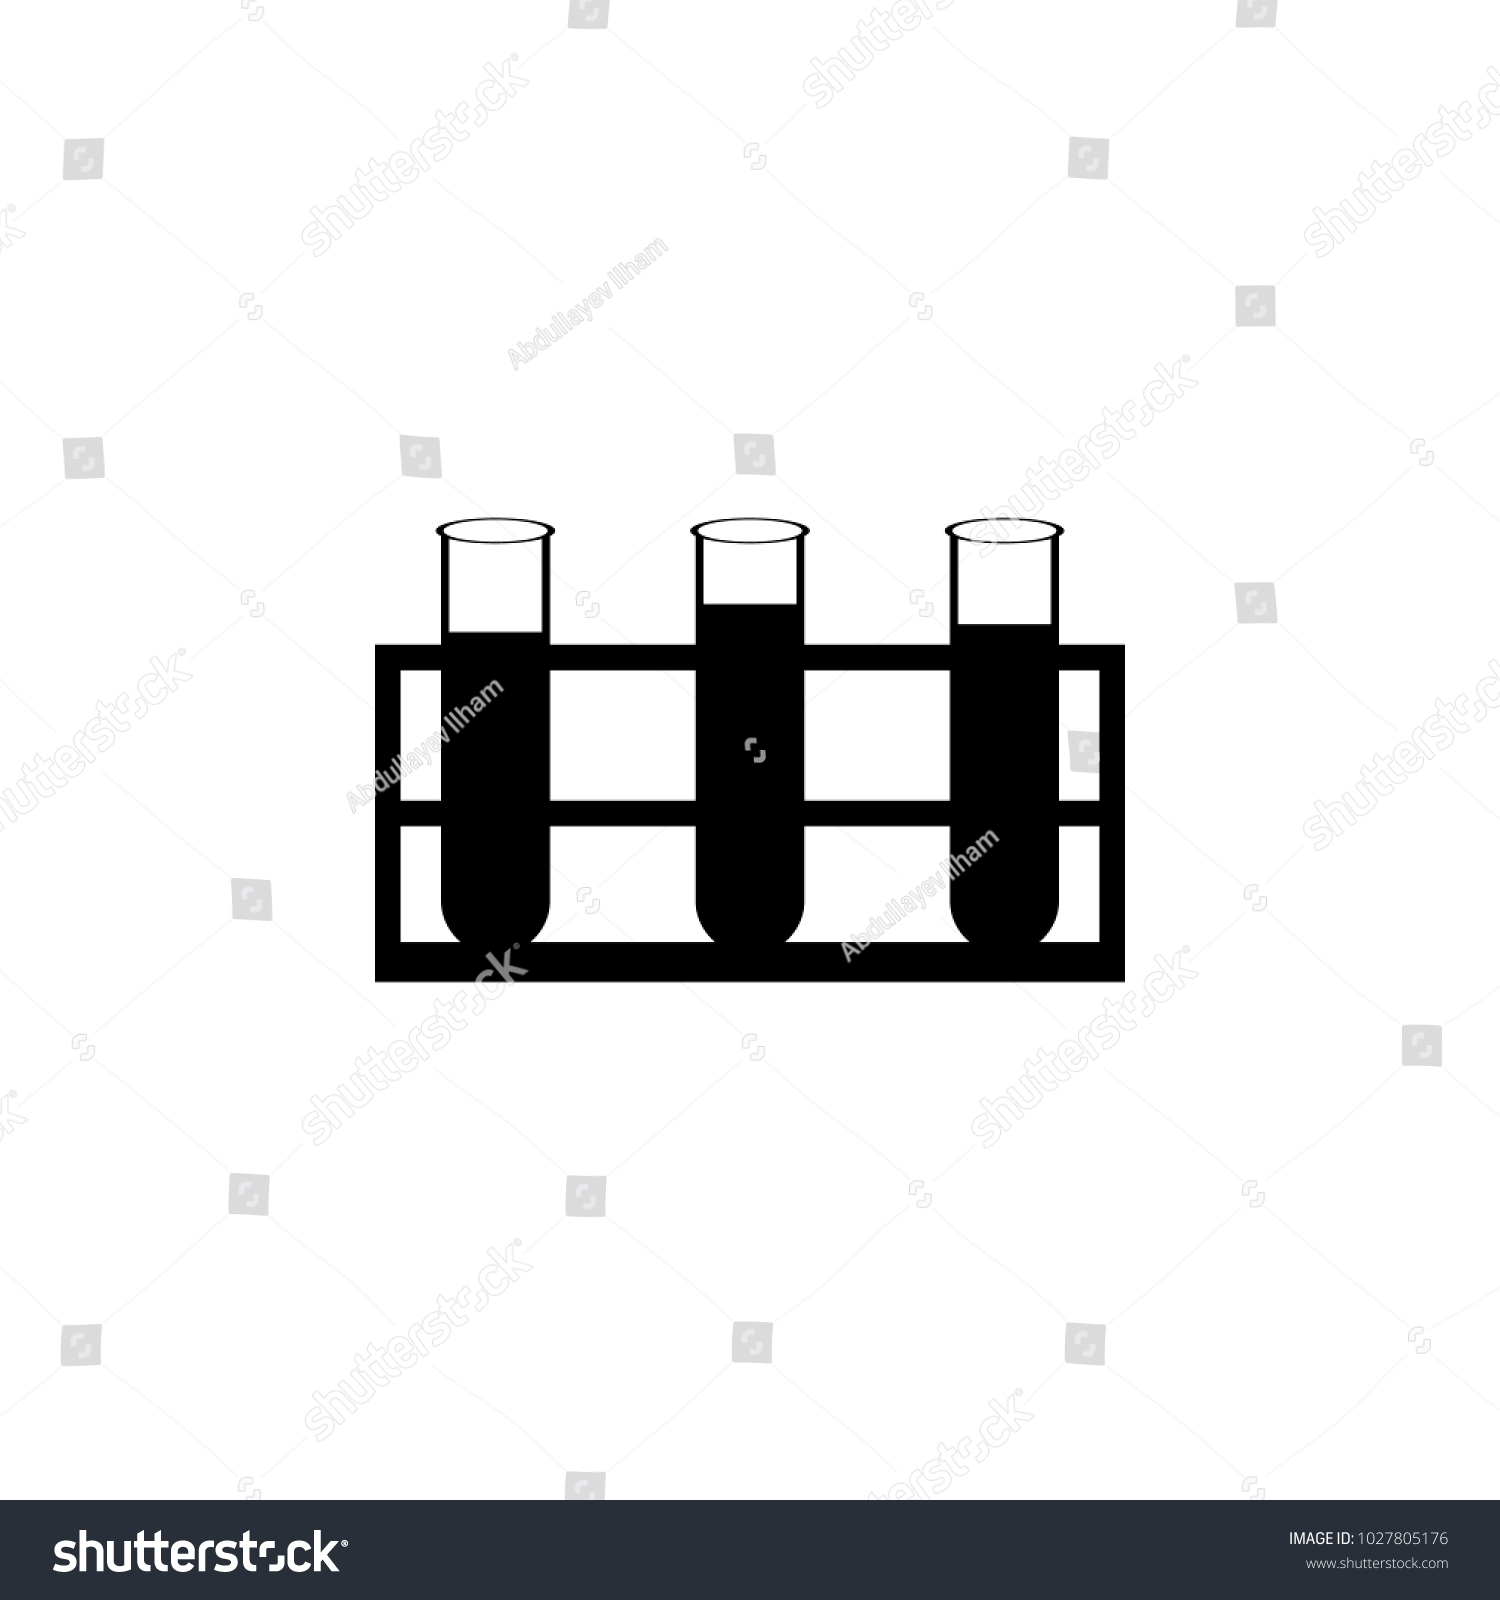 Blood work symbols images symbol and sign ideas blood test icon element medicine icon stock vector 1027805176 blood test icon element of medicine icon buycottarizona